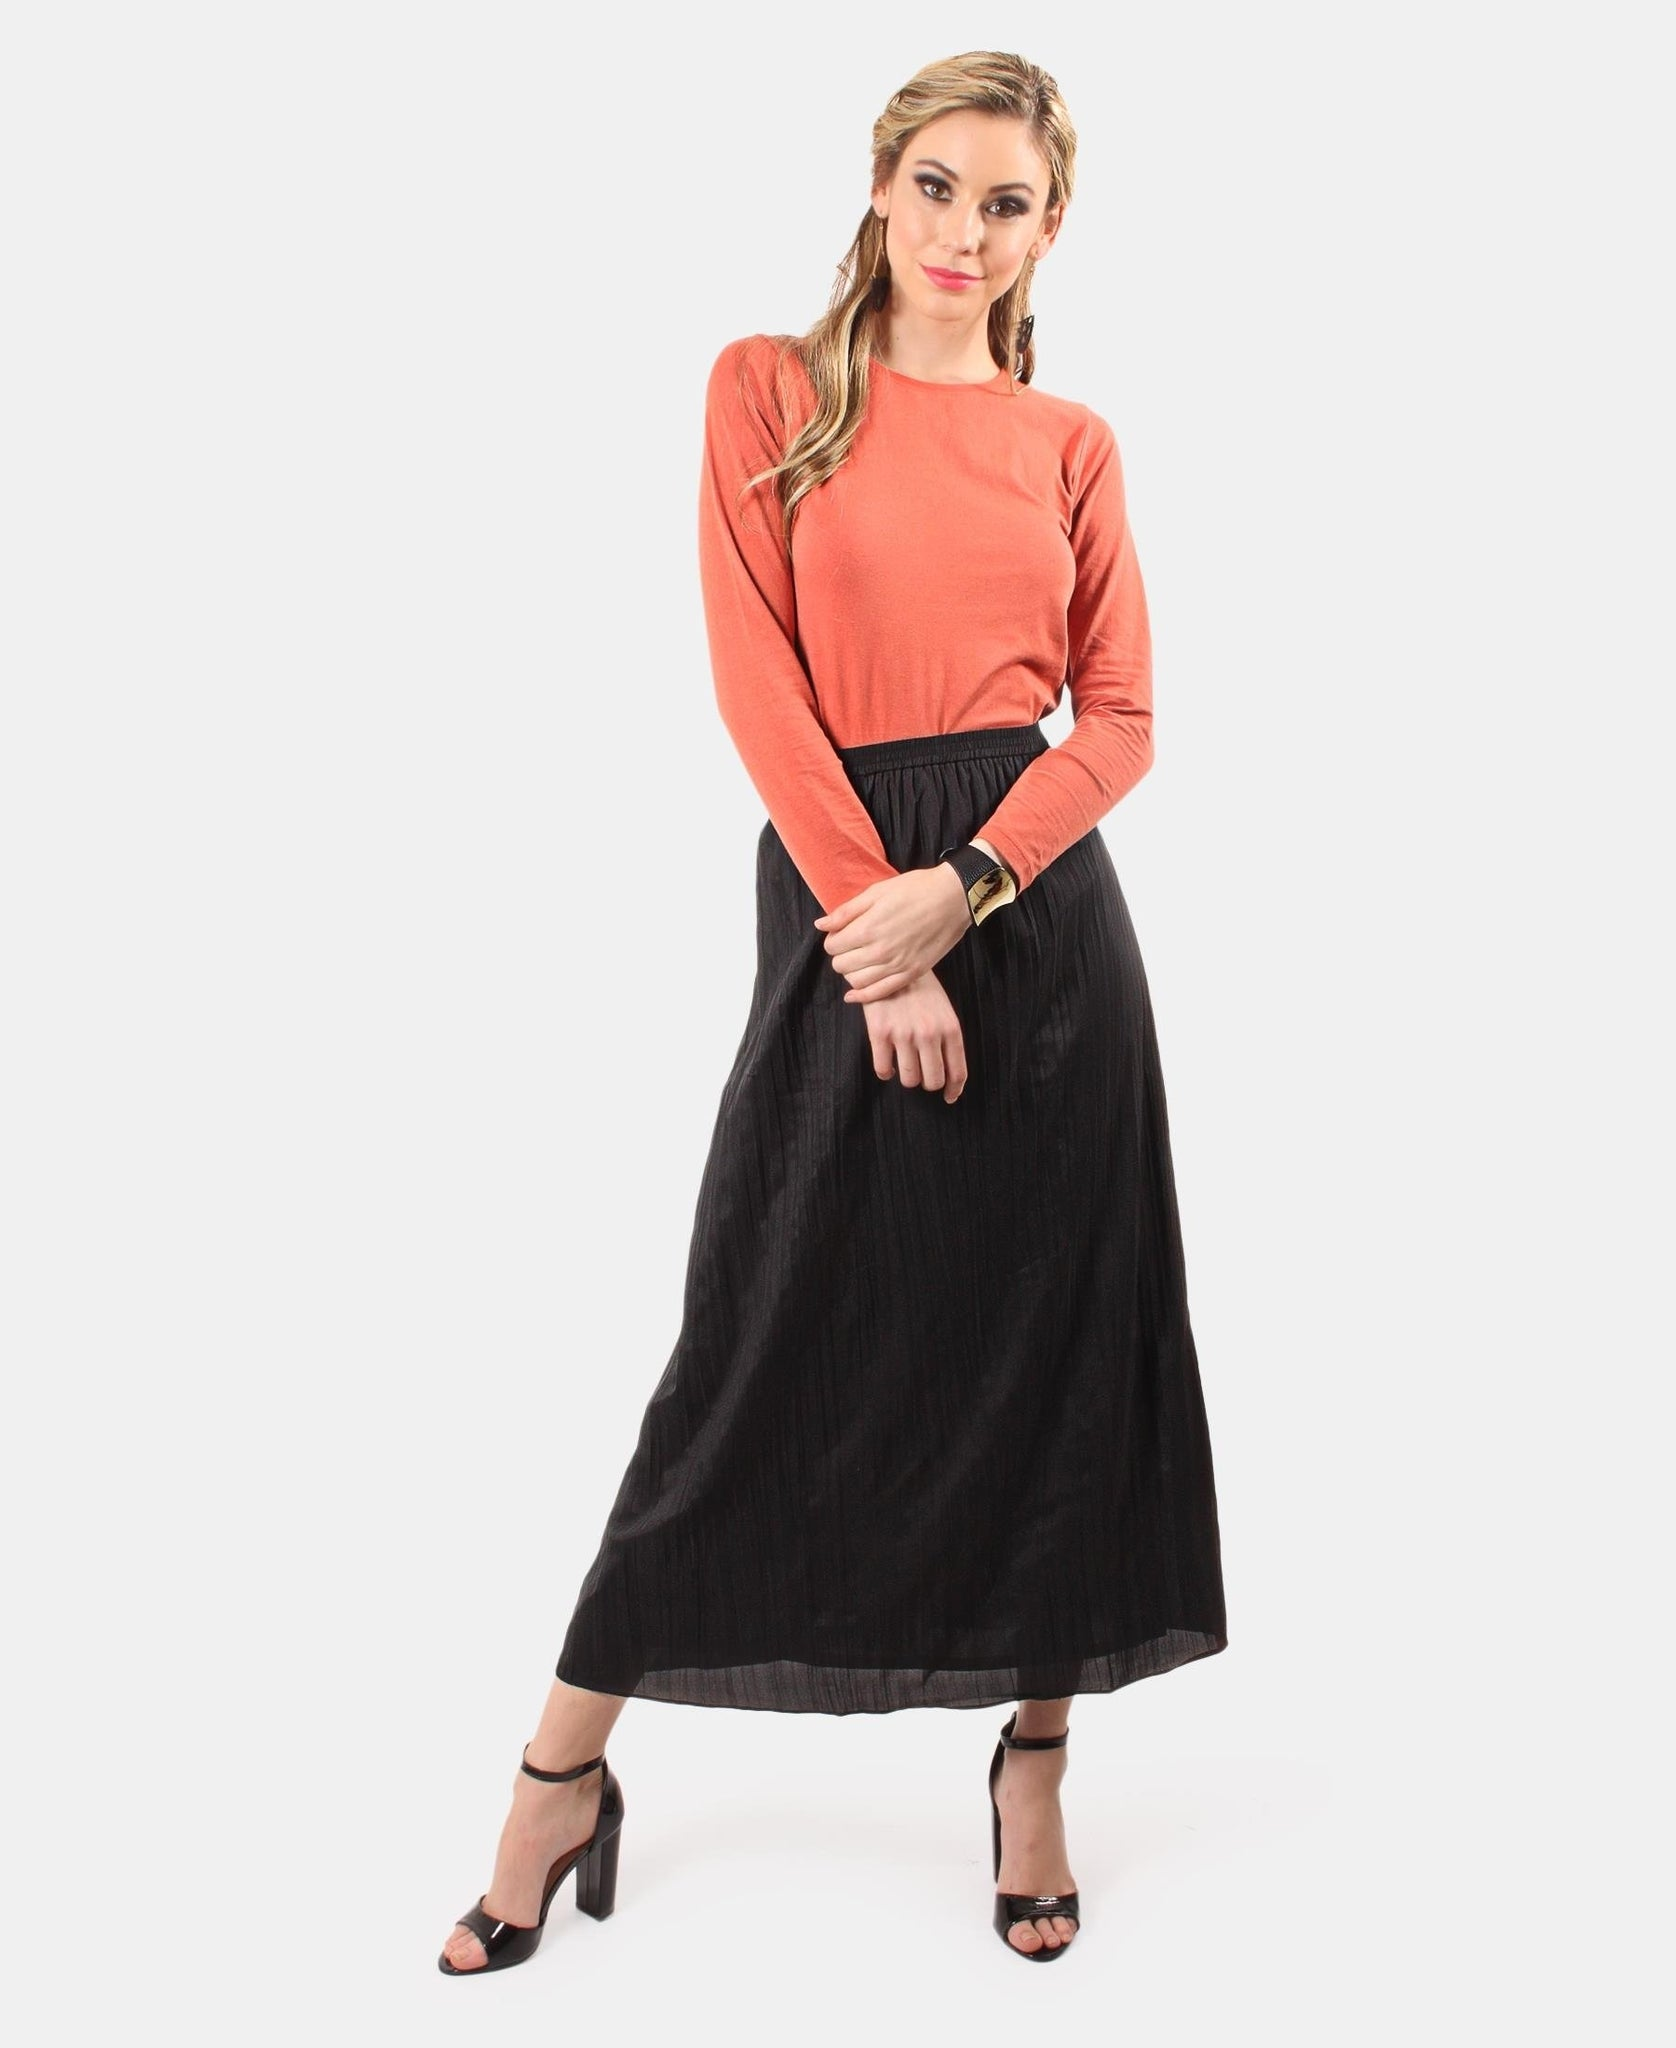 Mid Length Crinkle Skirt - Black